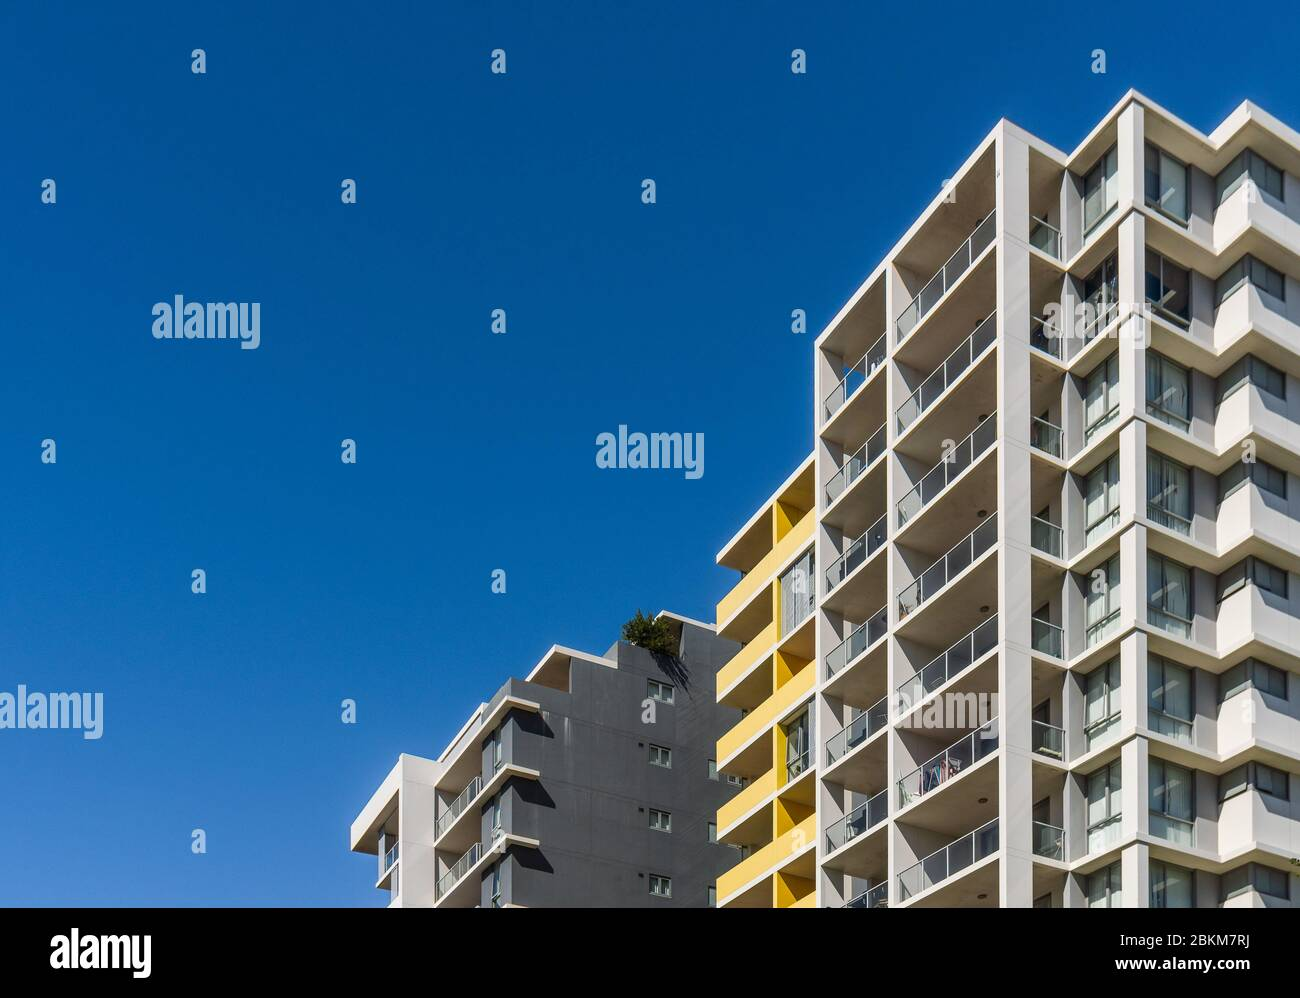 High rise apartments in Mascot, South Sydney Stock Photo